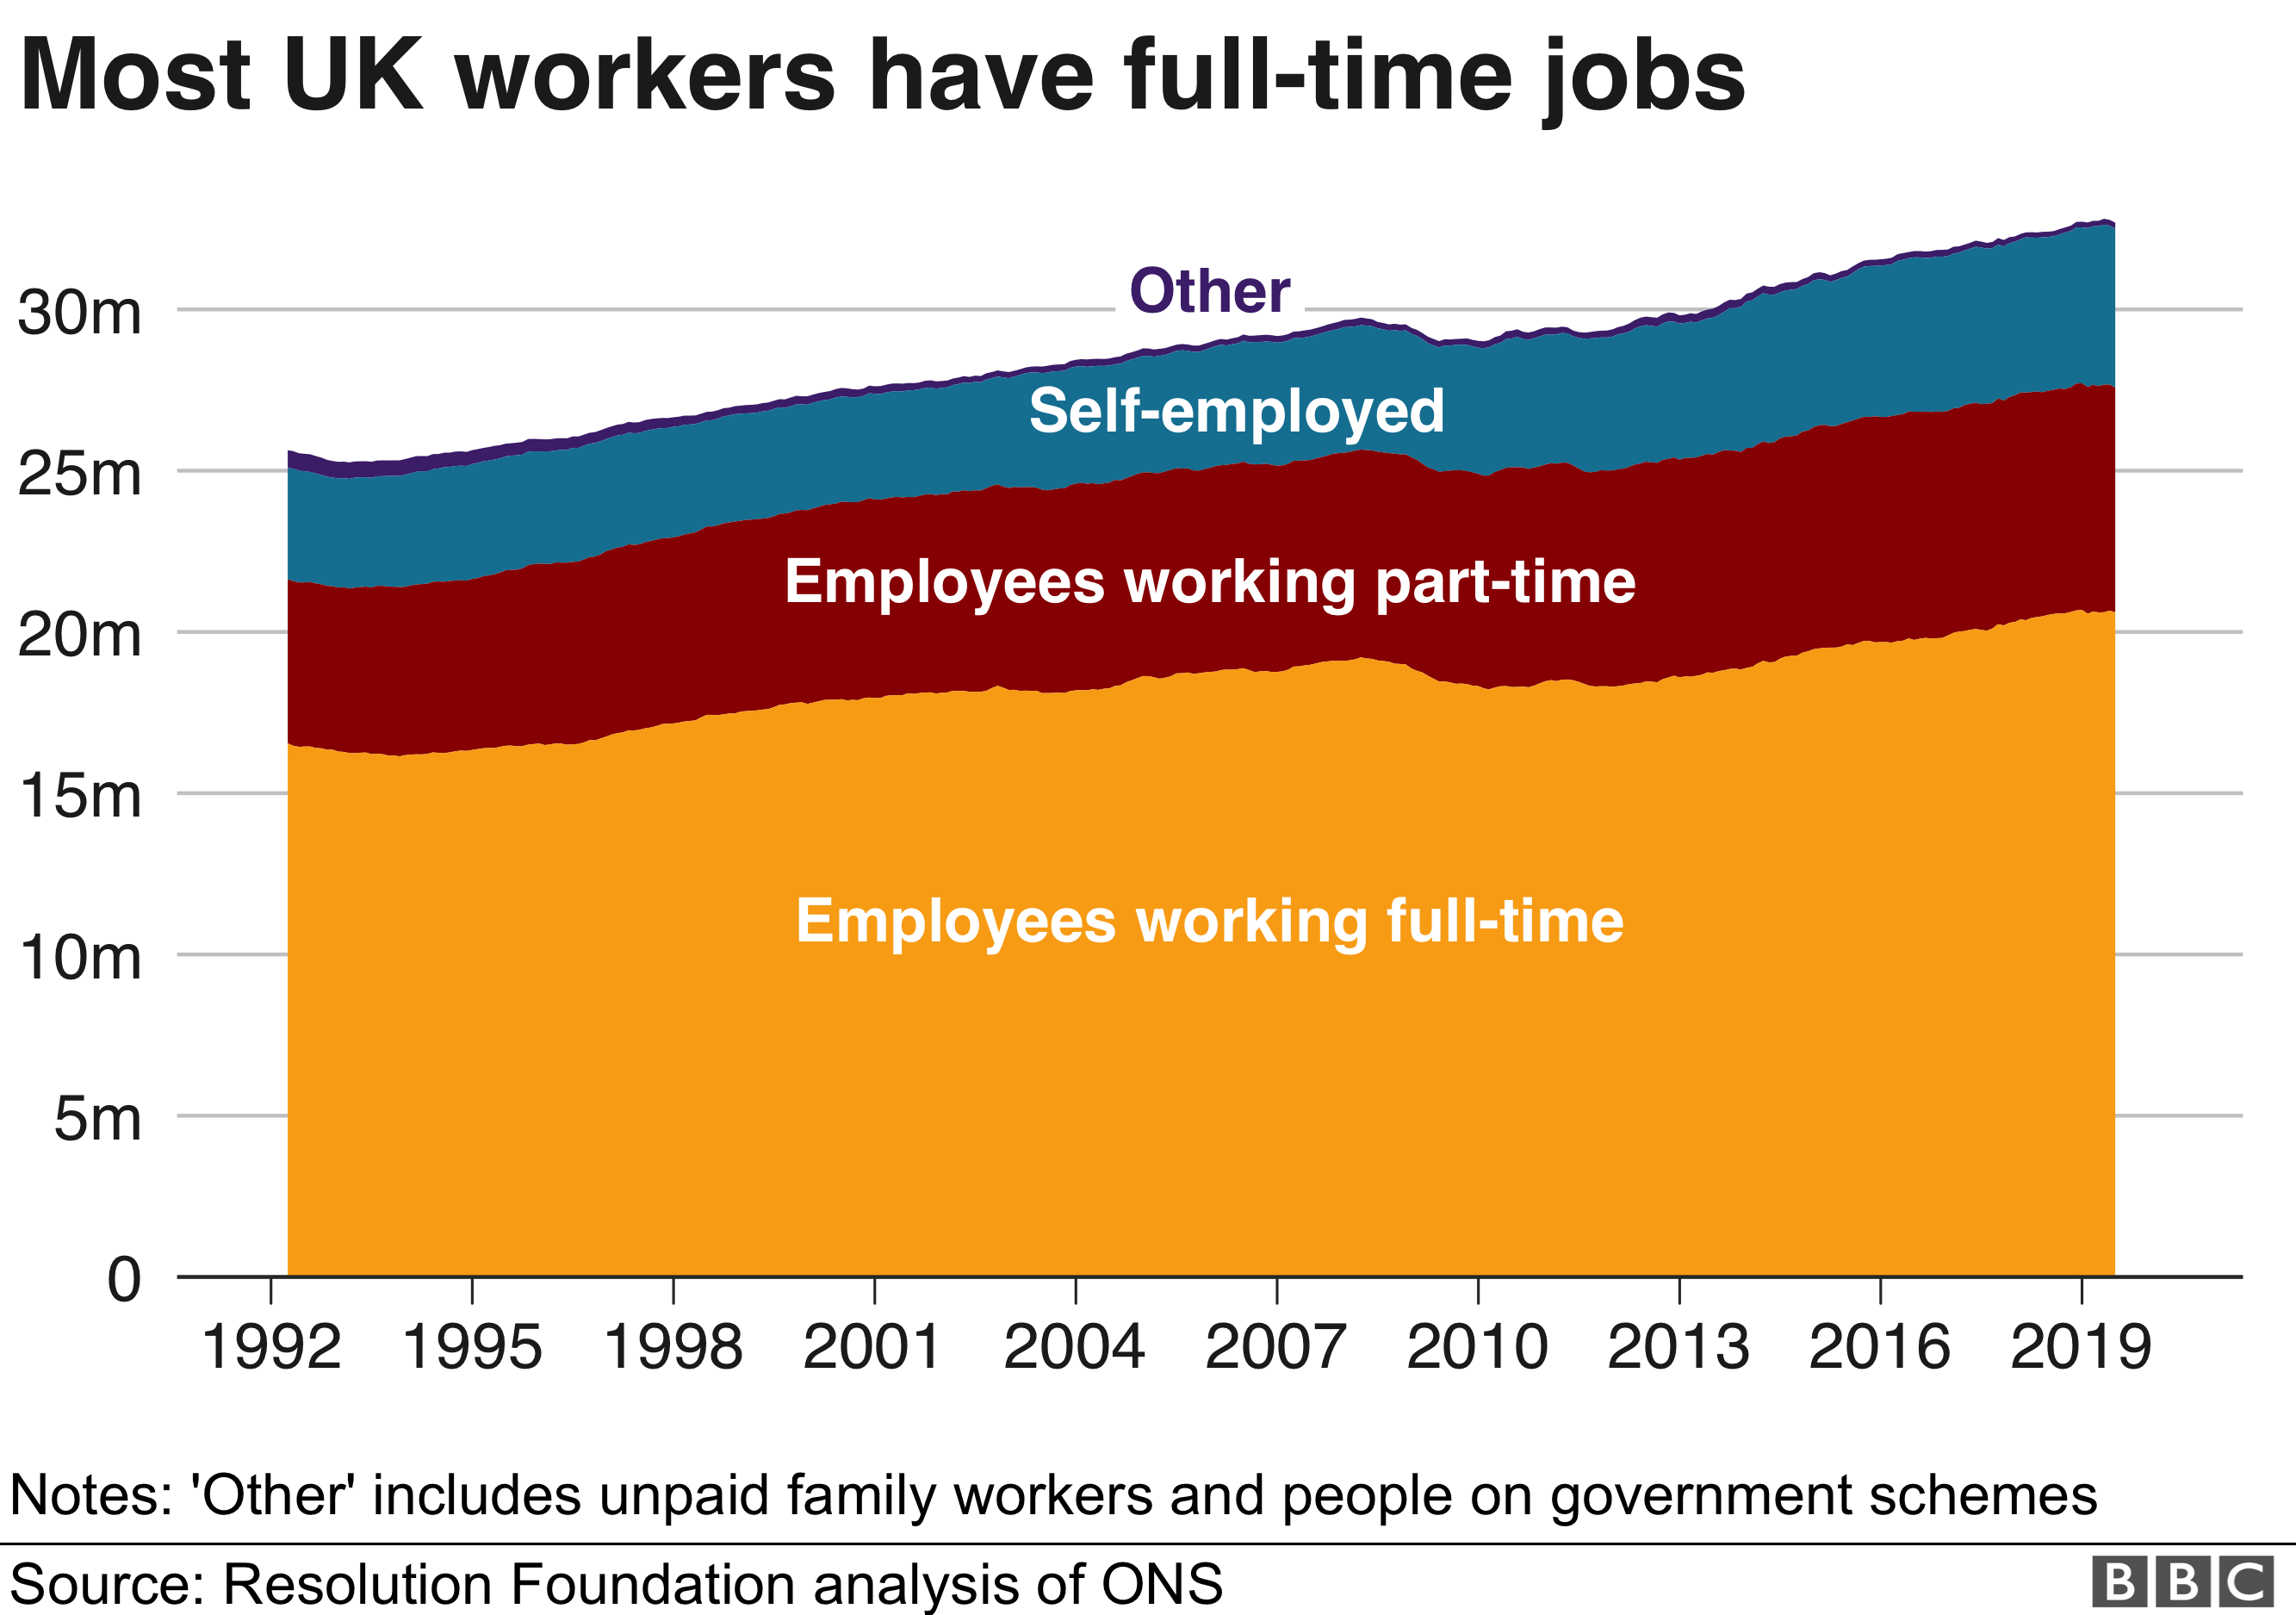 Most UK workers have full-time jobs